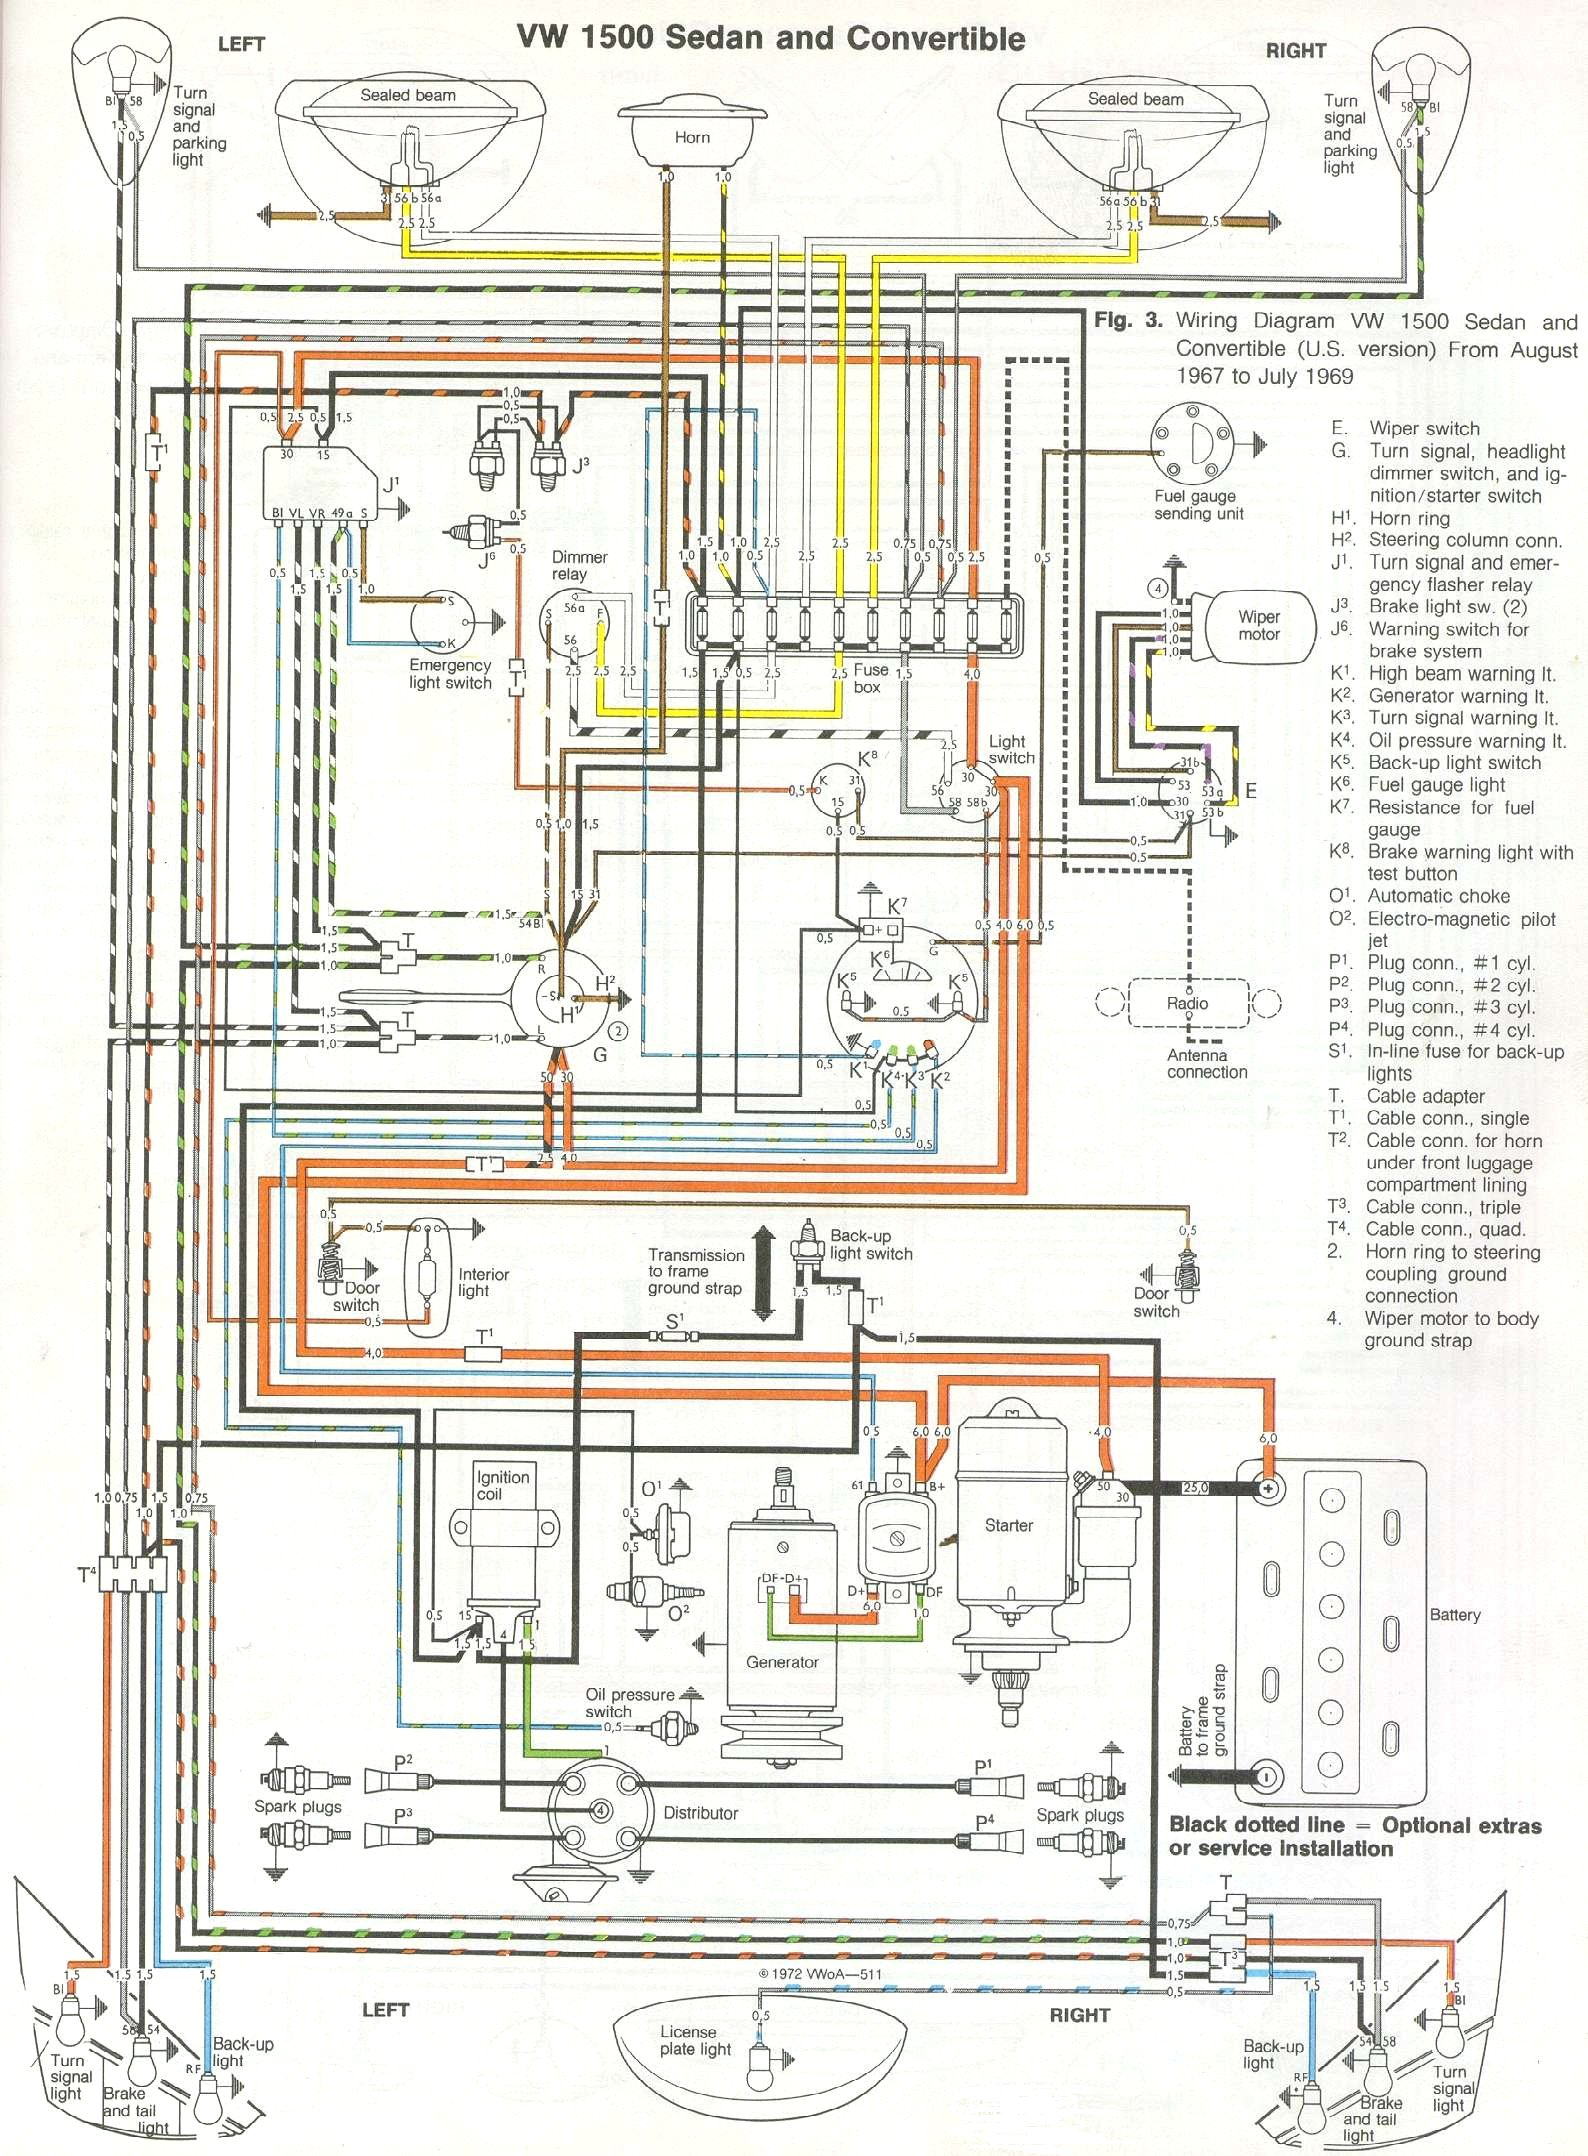 73 vw beetle wiring diagram 73 wiring diagrams online thesamba com type 1 wiring diagrams